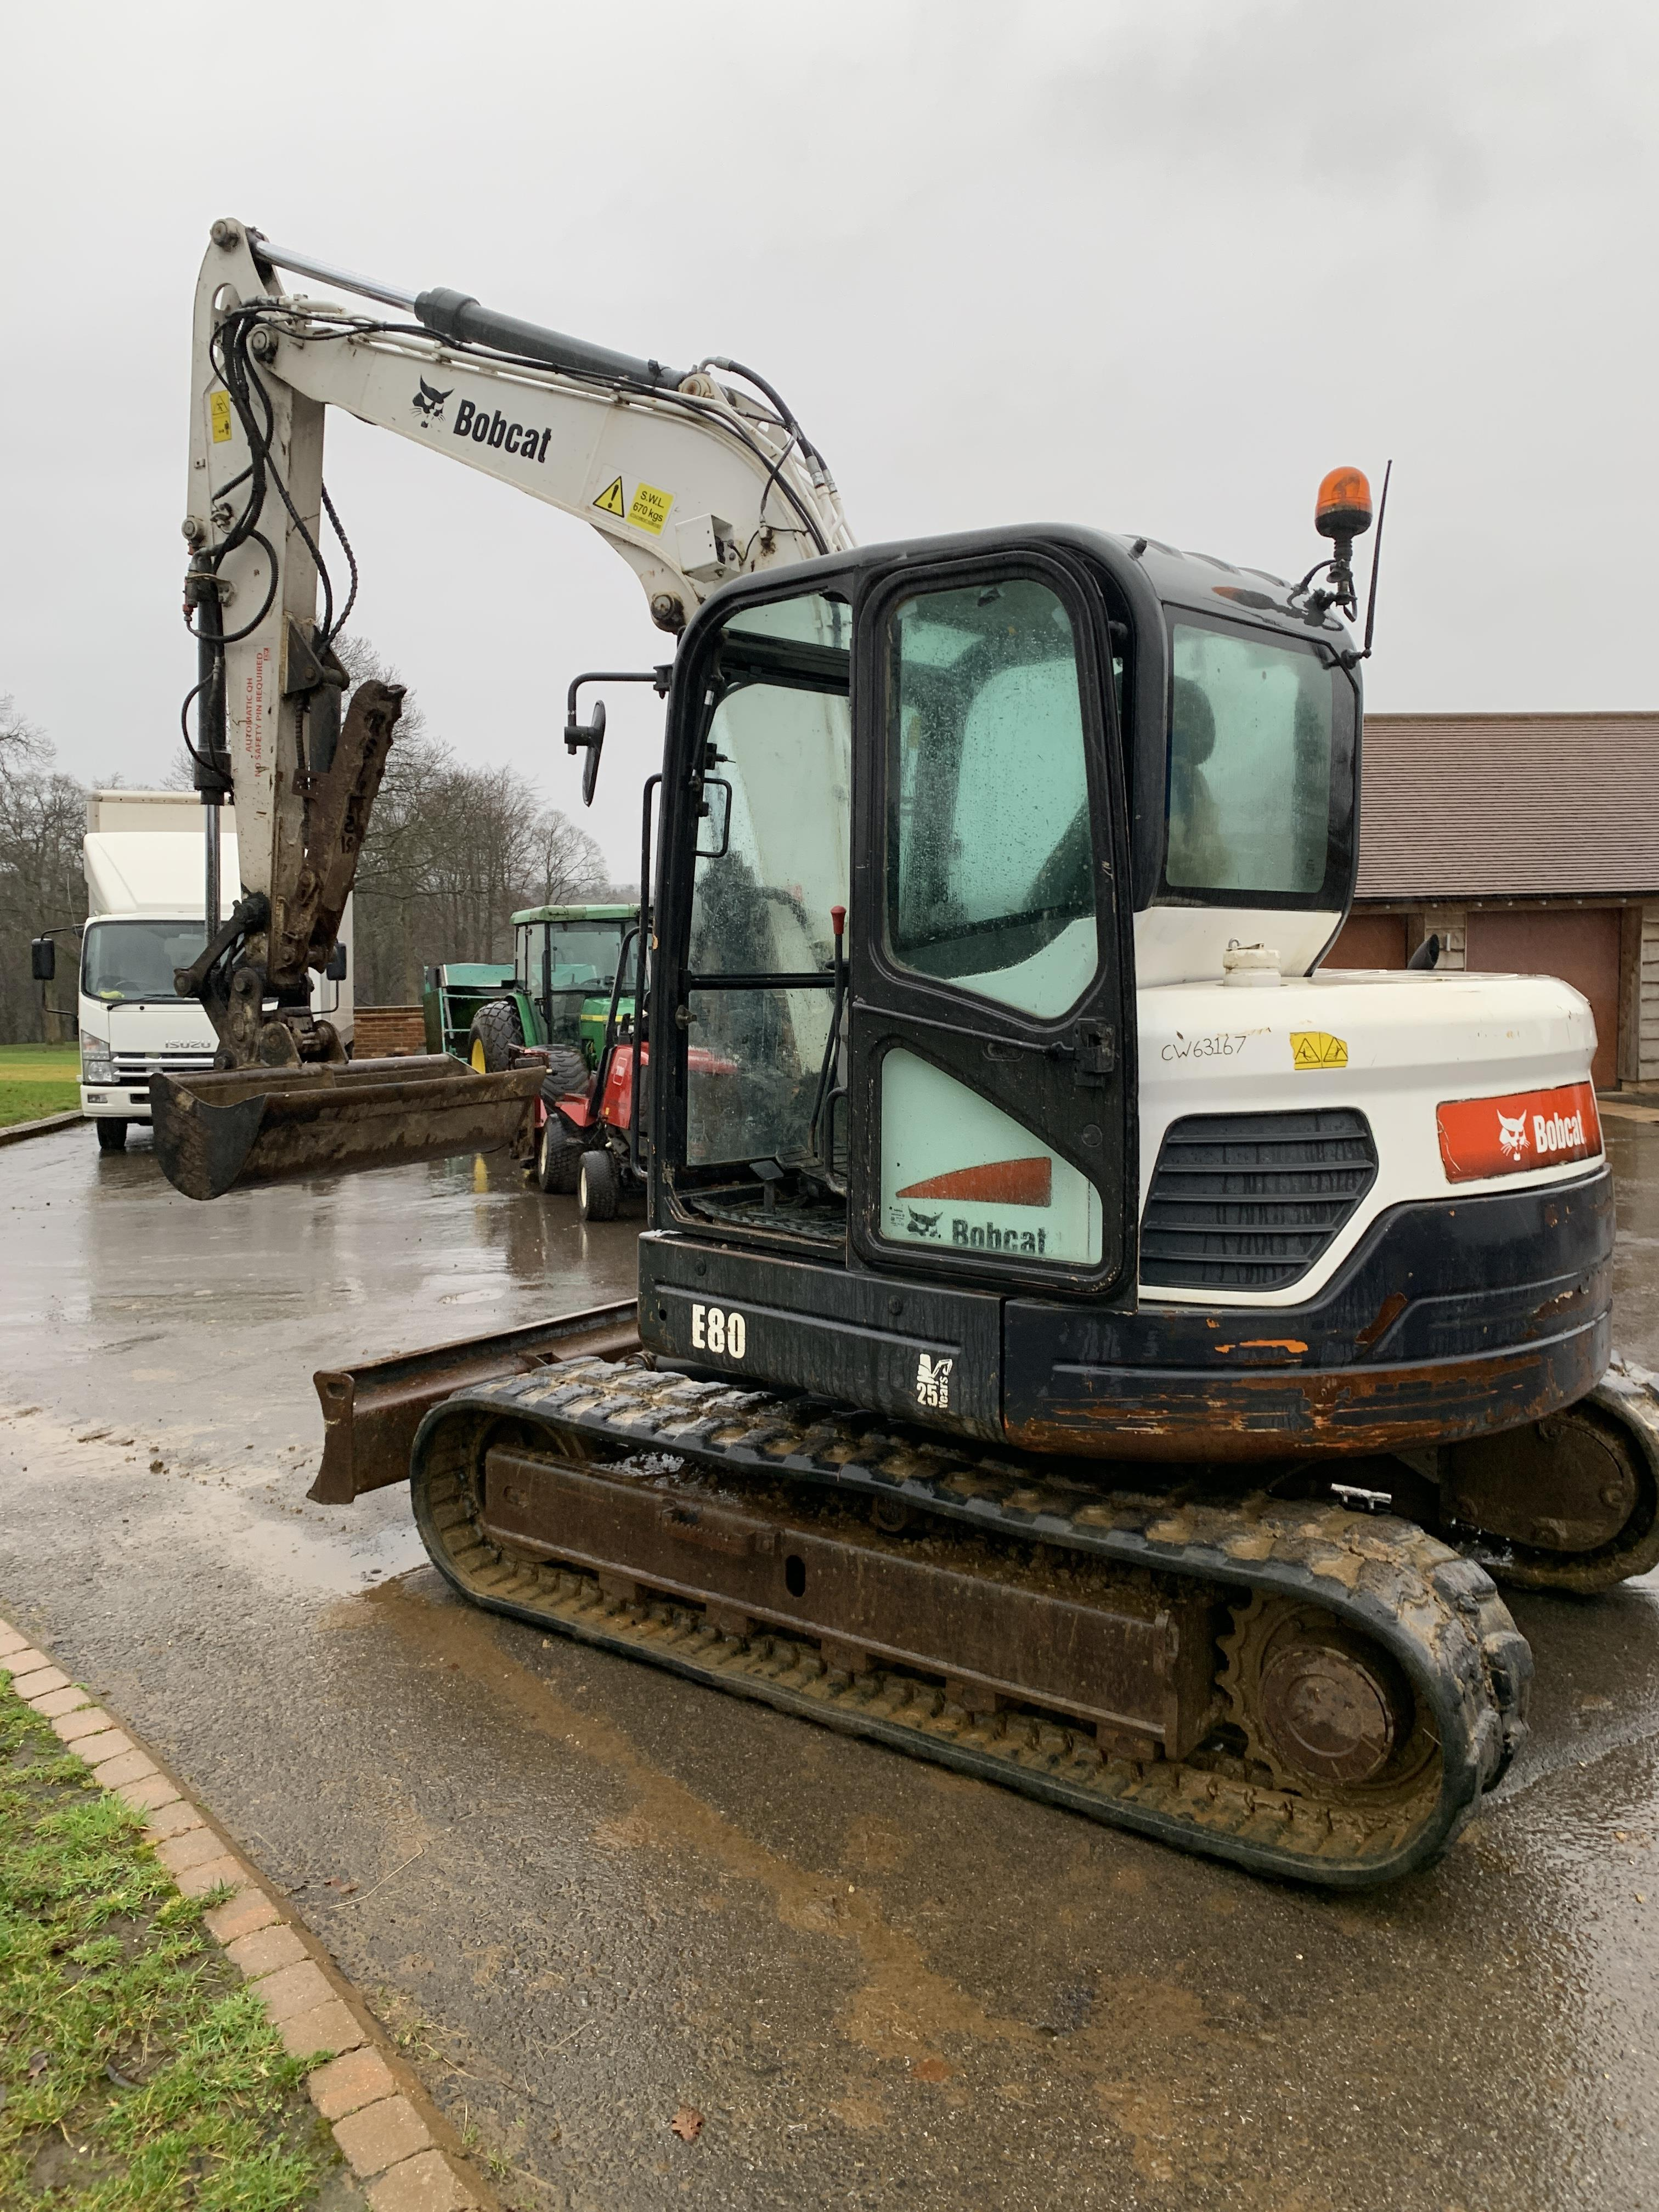 BOBCAT E80 TRACKED CRAWLER EXCAVATOR / DIGGER, C/W HYDRAULIC THUMB, YEAR 2012, RUNS, WORKS AND DIGS - Image 2 of 7